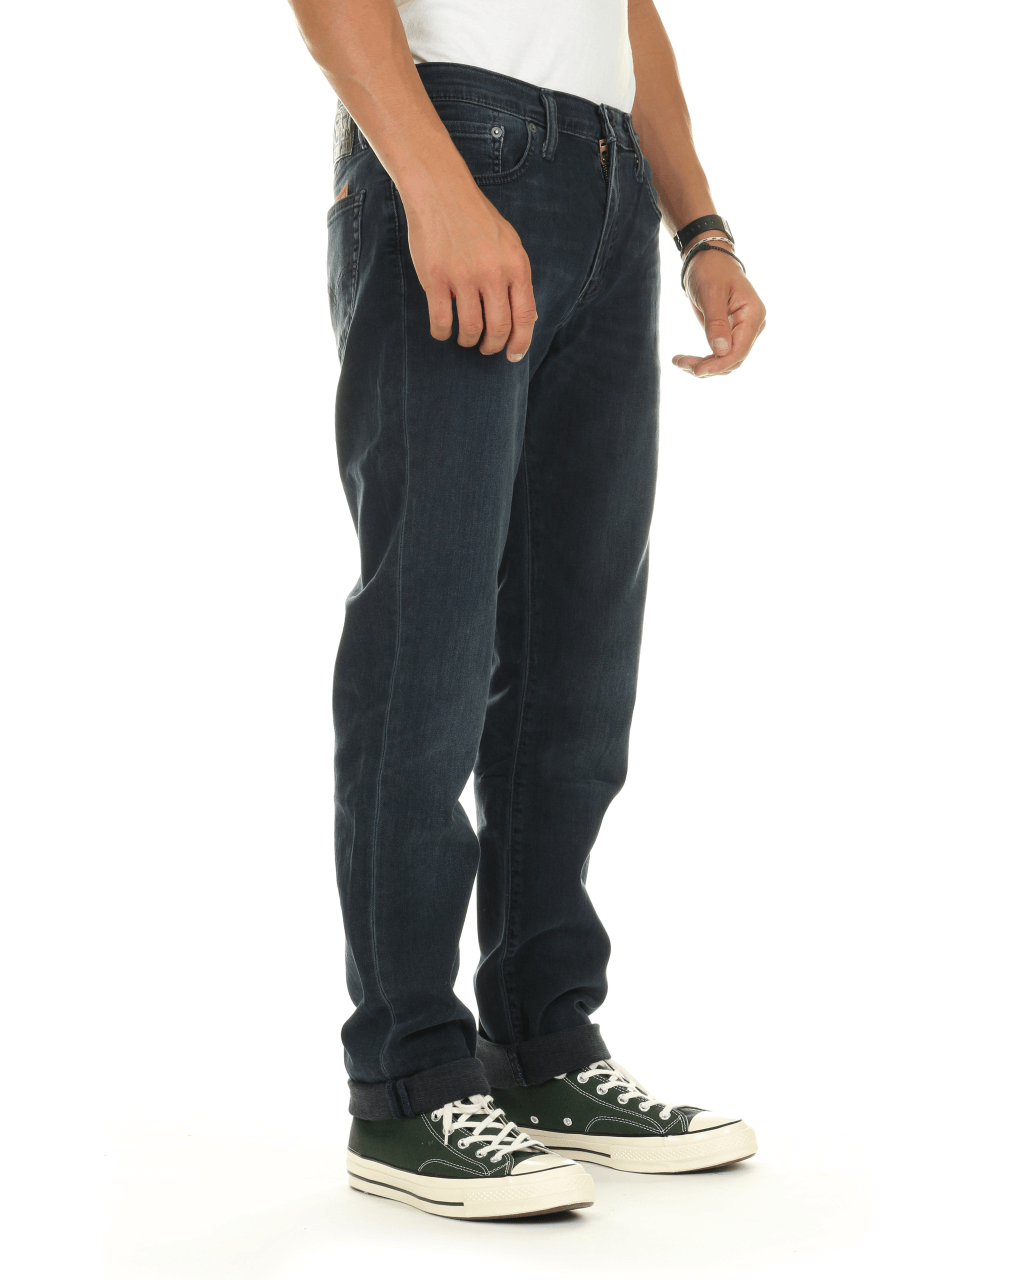 Levi's® 511 PERFORMANCE STRETCH Slim Fit Mens Jeans Headed